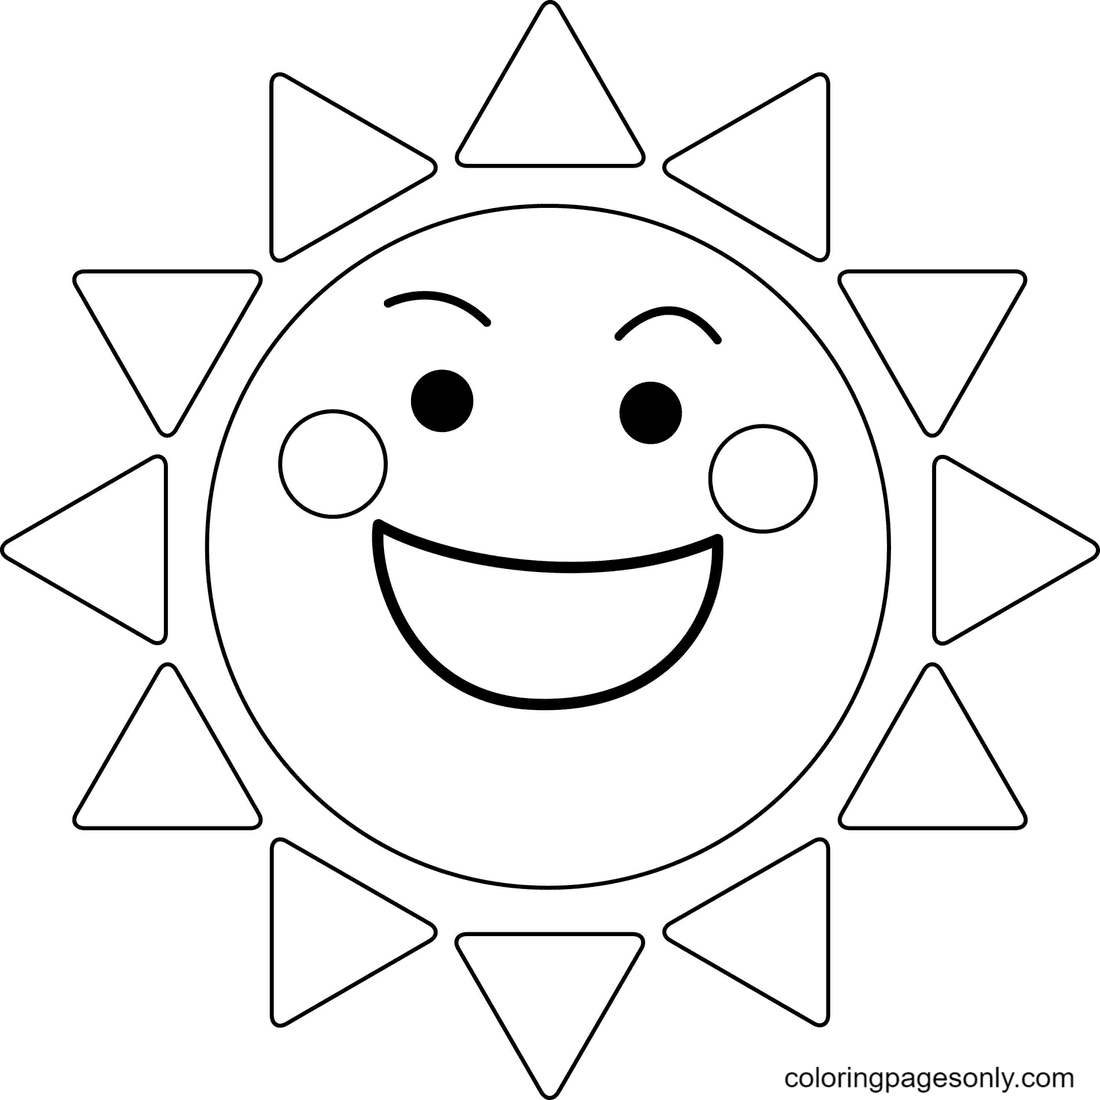 The Sun Smiles Happily Coloring Page